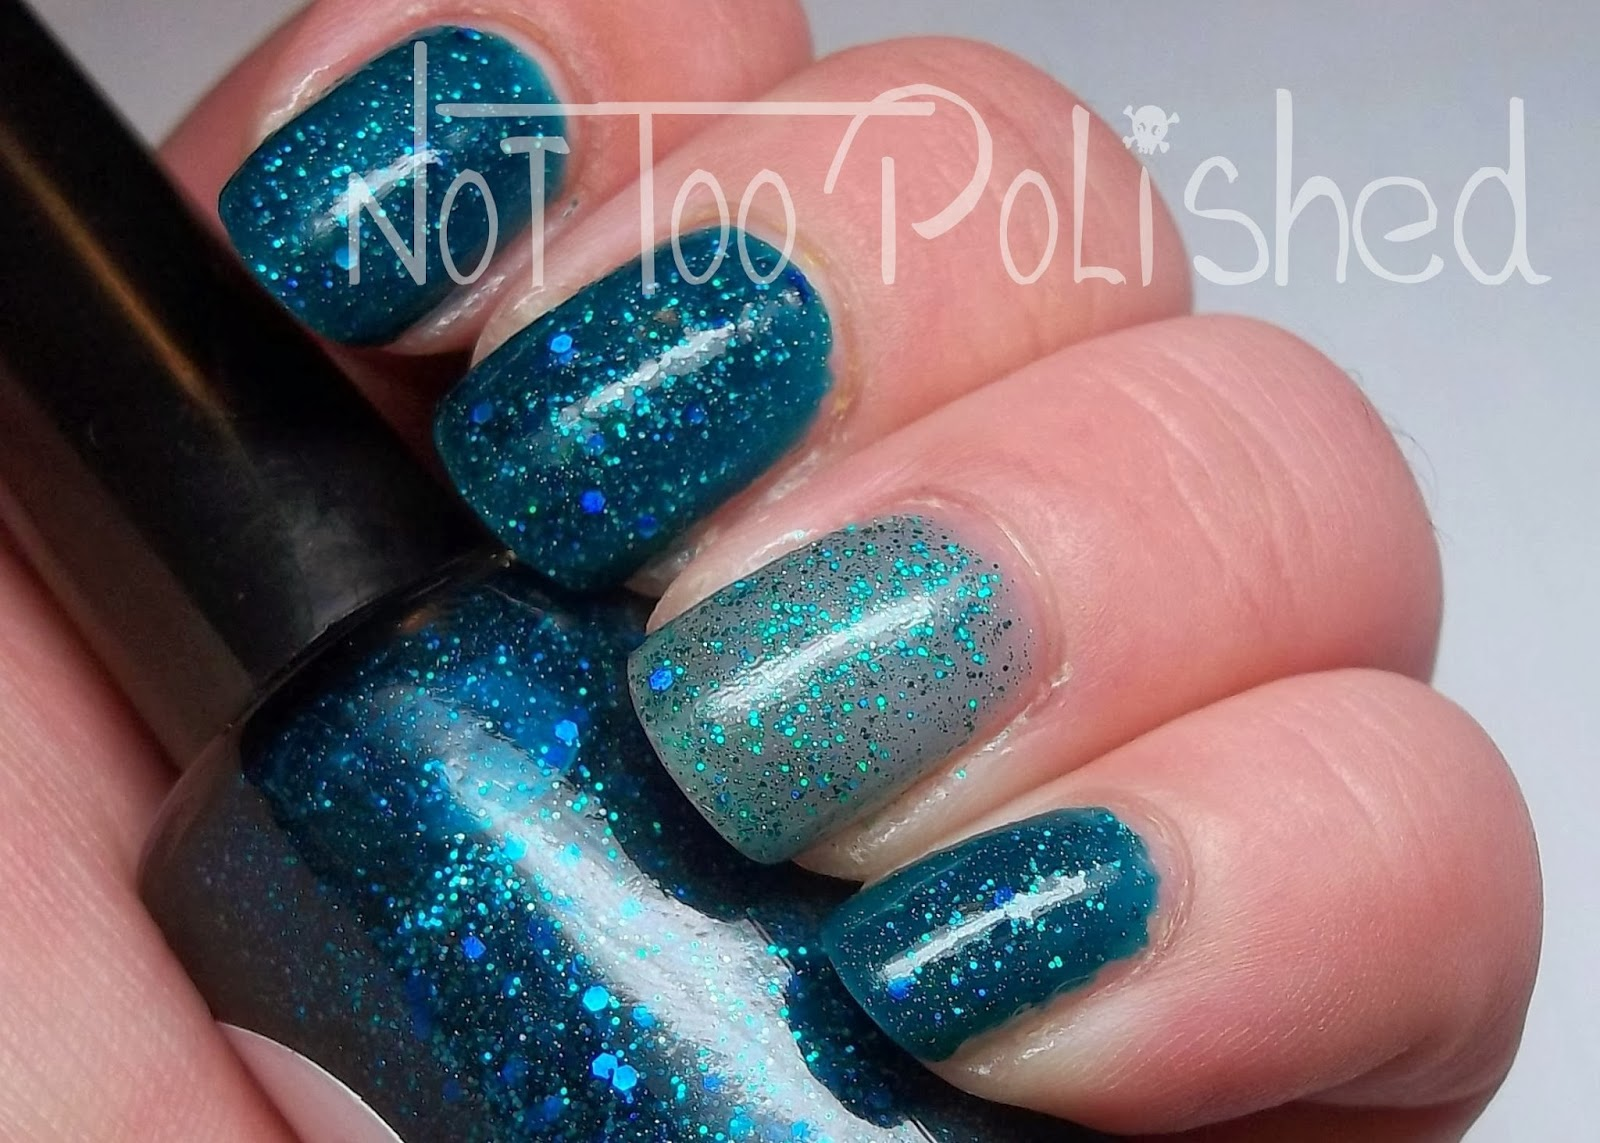 Not Too Polished: Penelope Luz Taurus: Swatch and Review